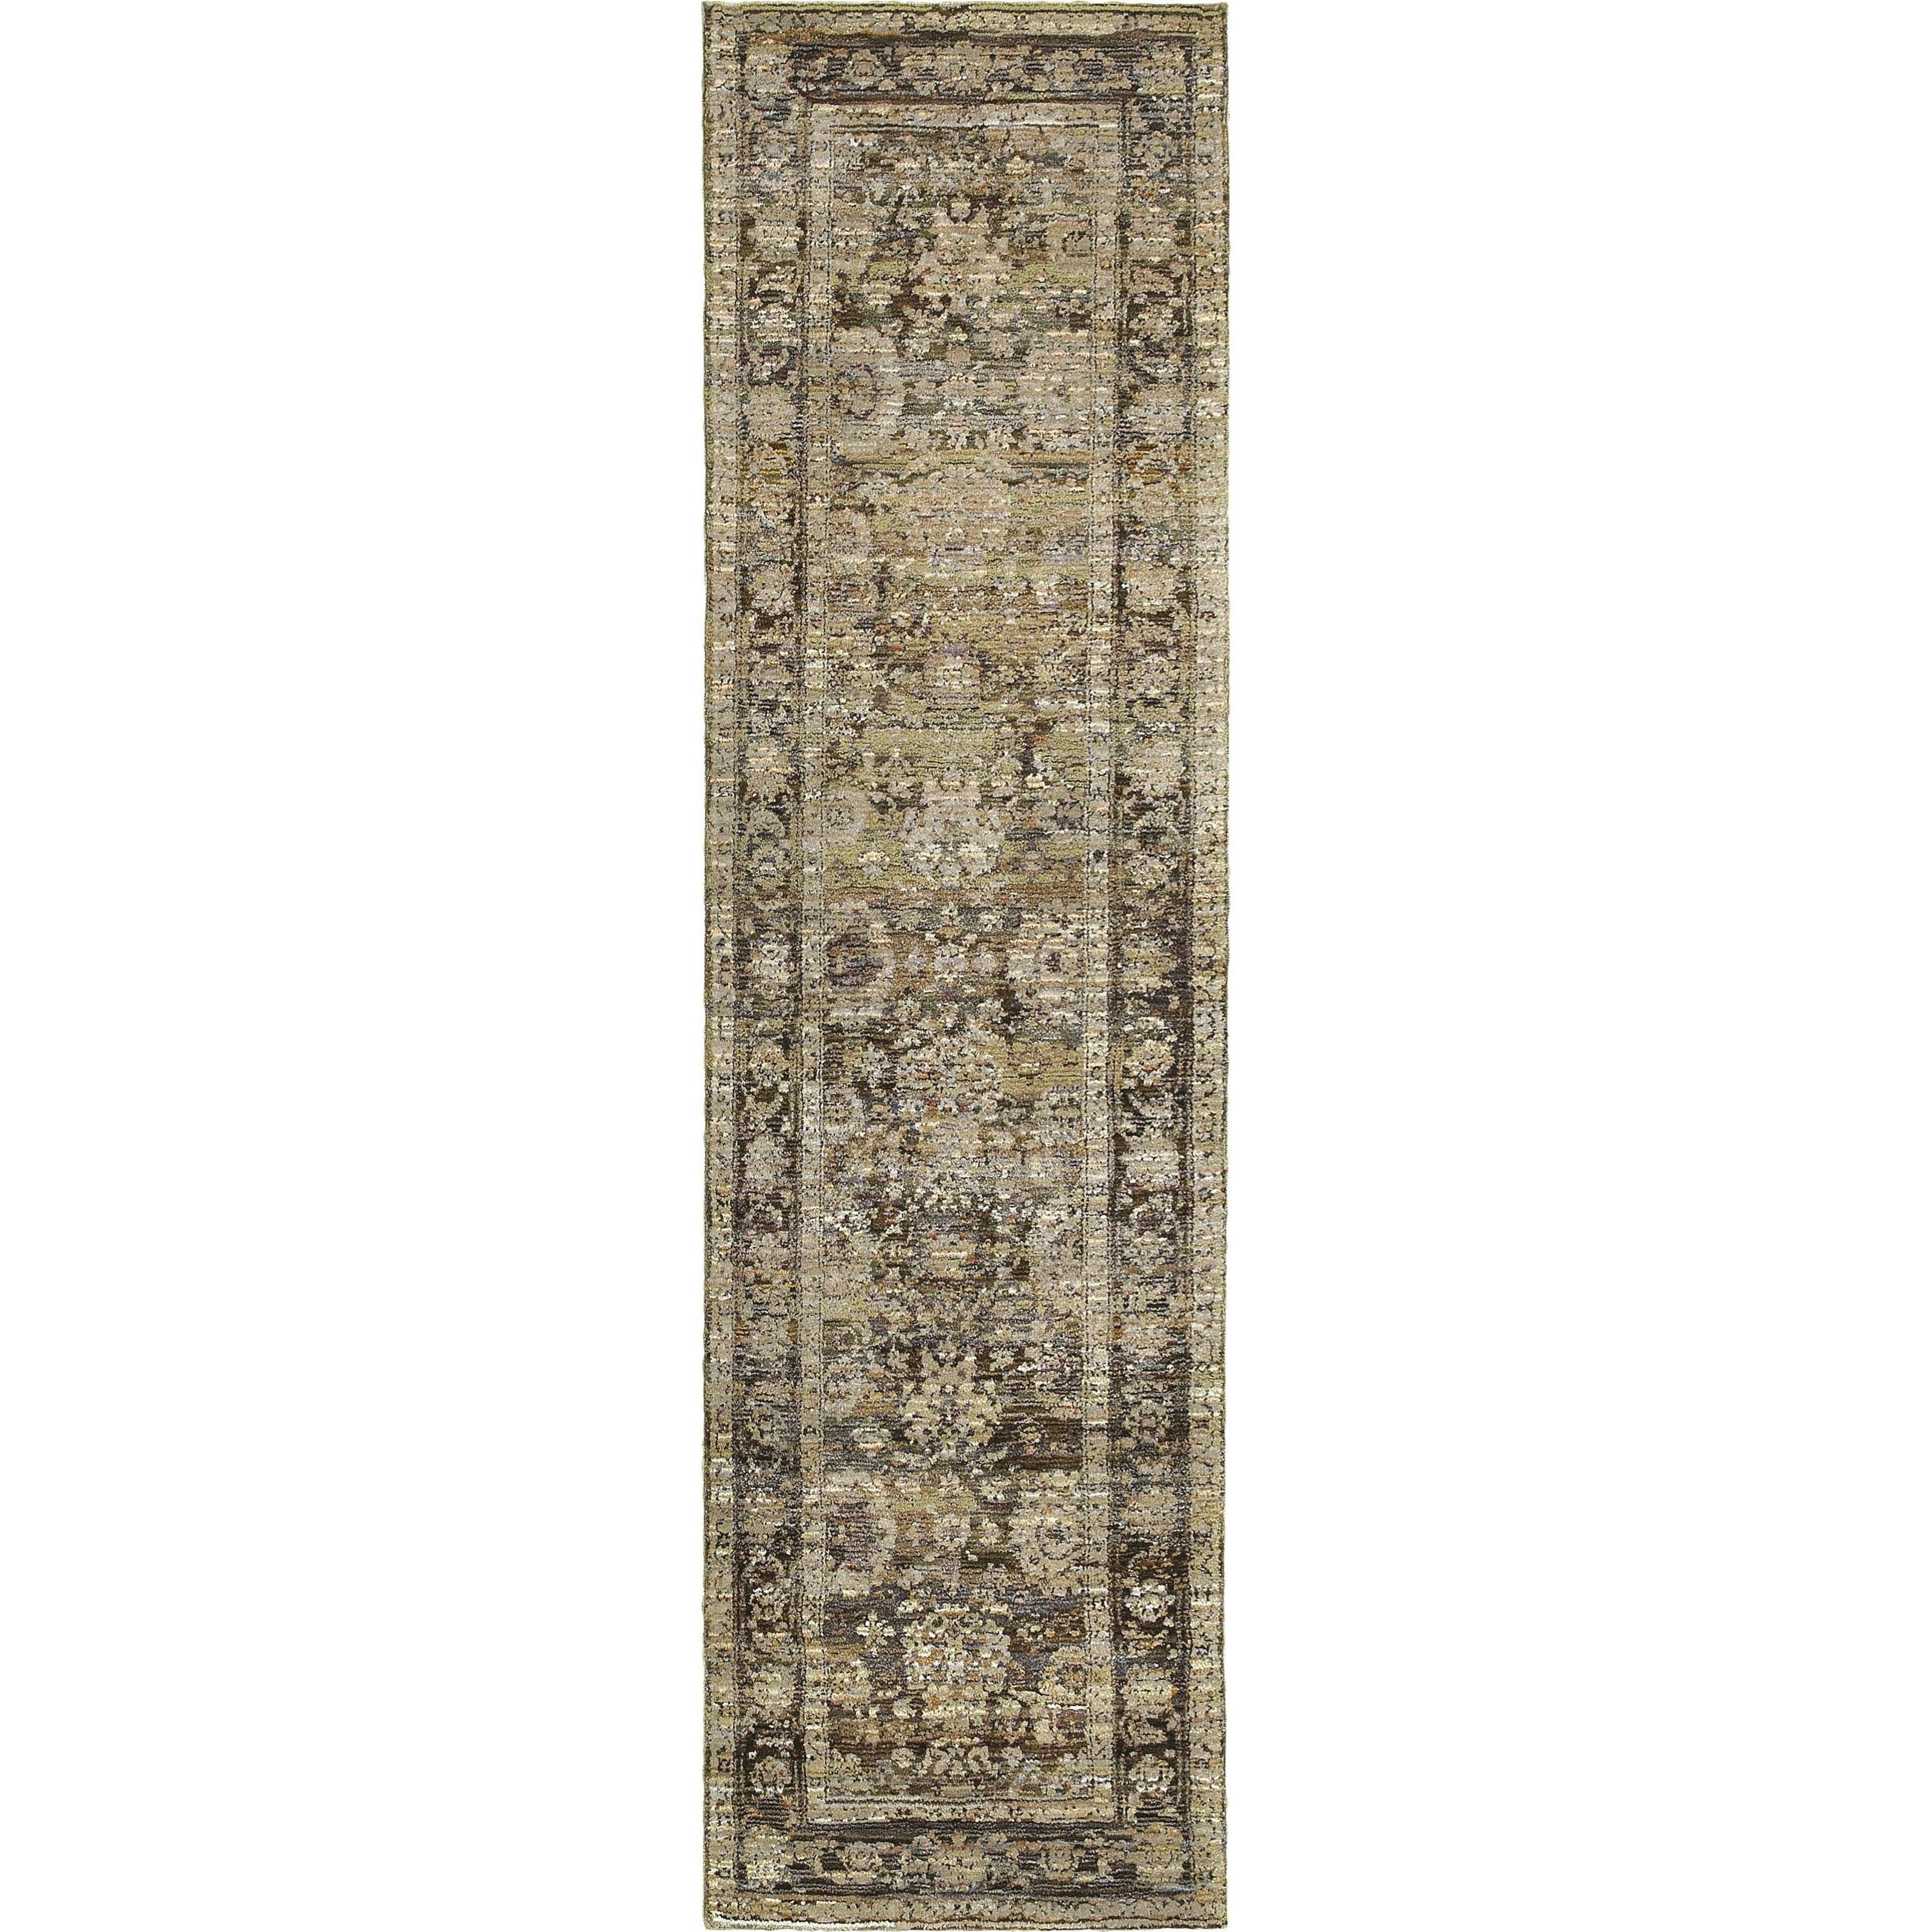 "2' 3"" X  8' 0"" Casual Green/ Brown Runner Ru"